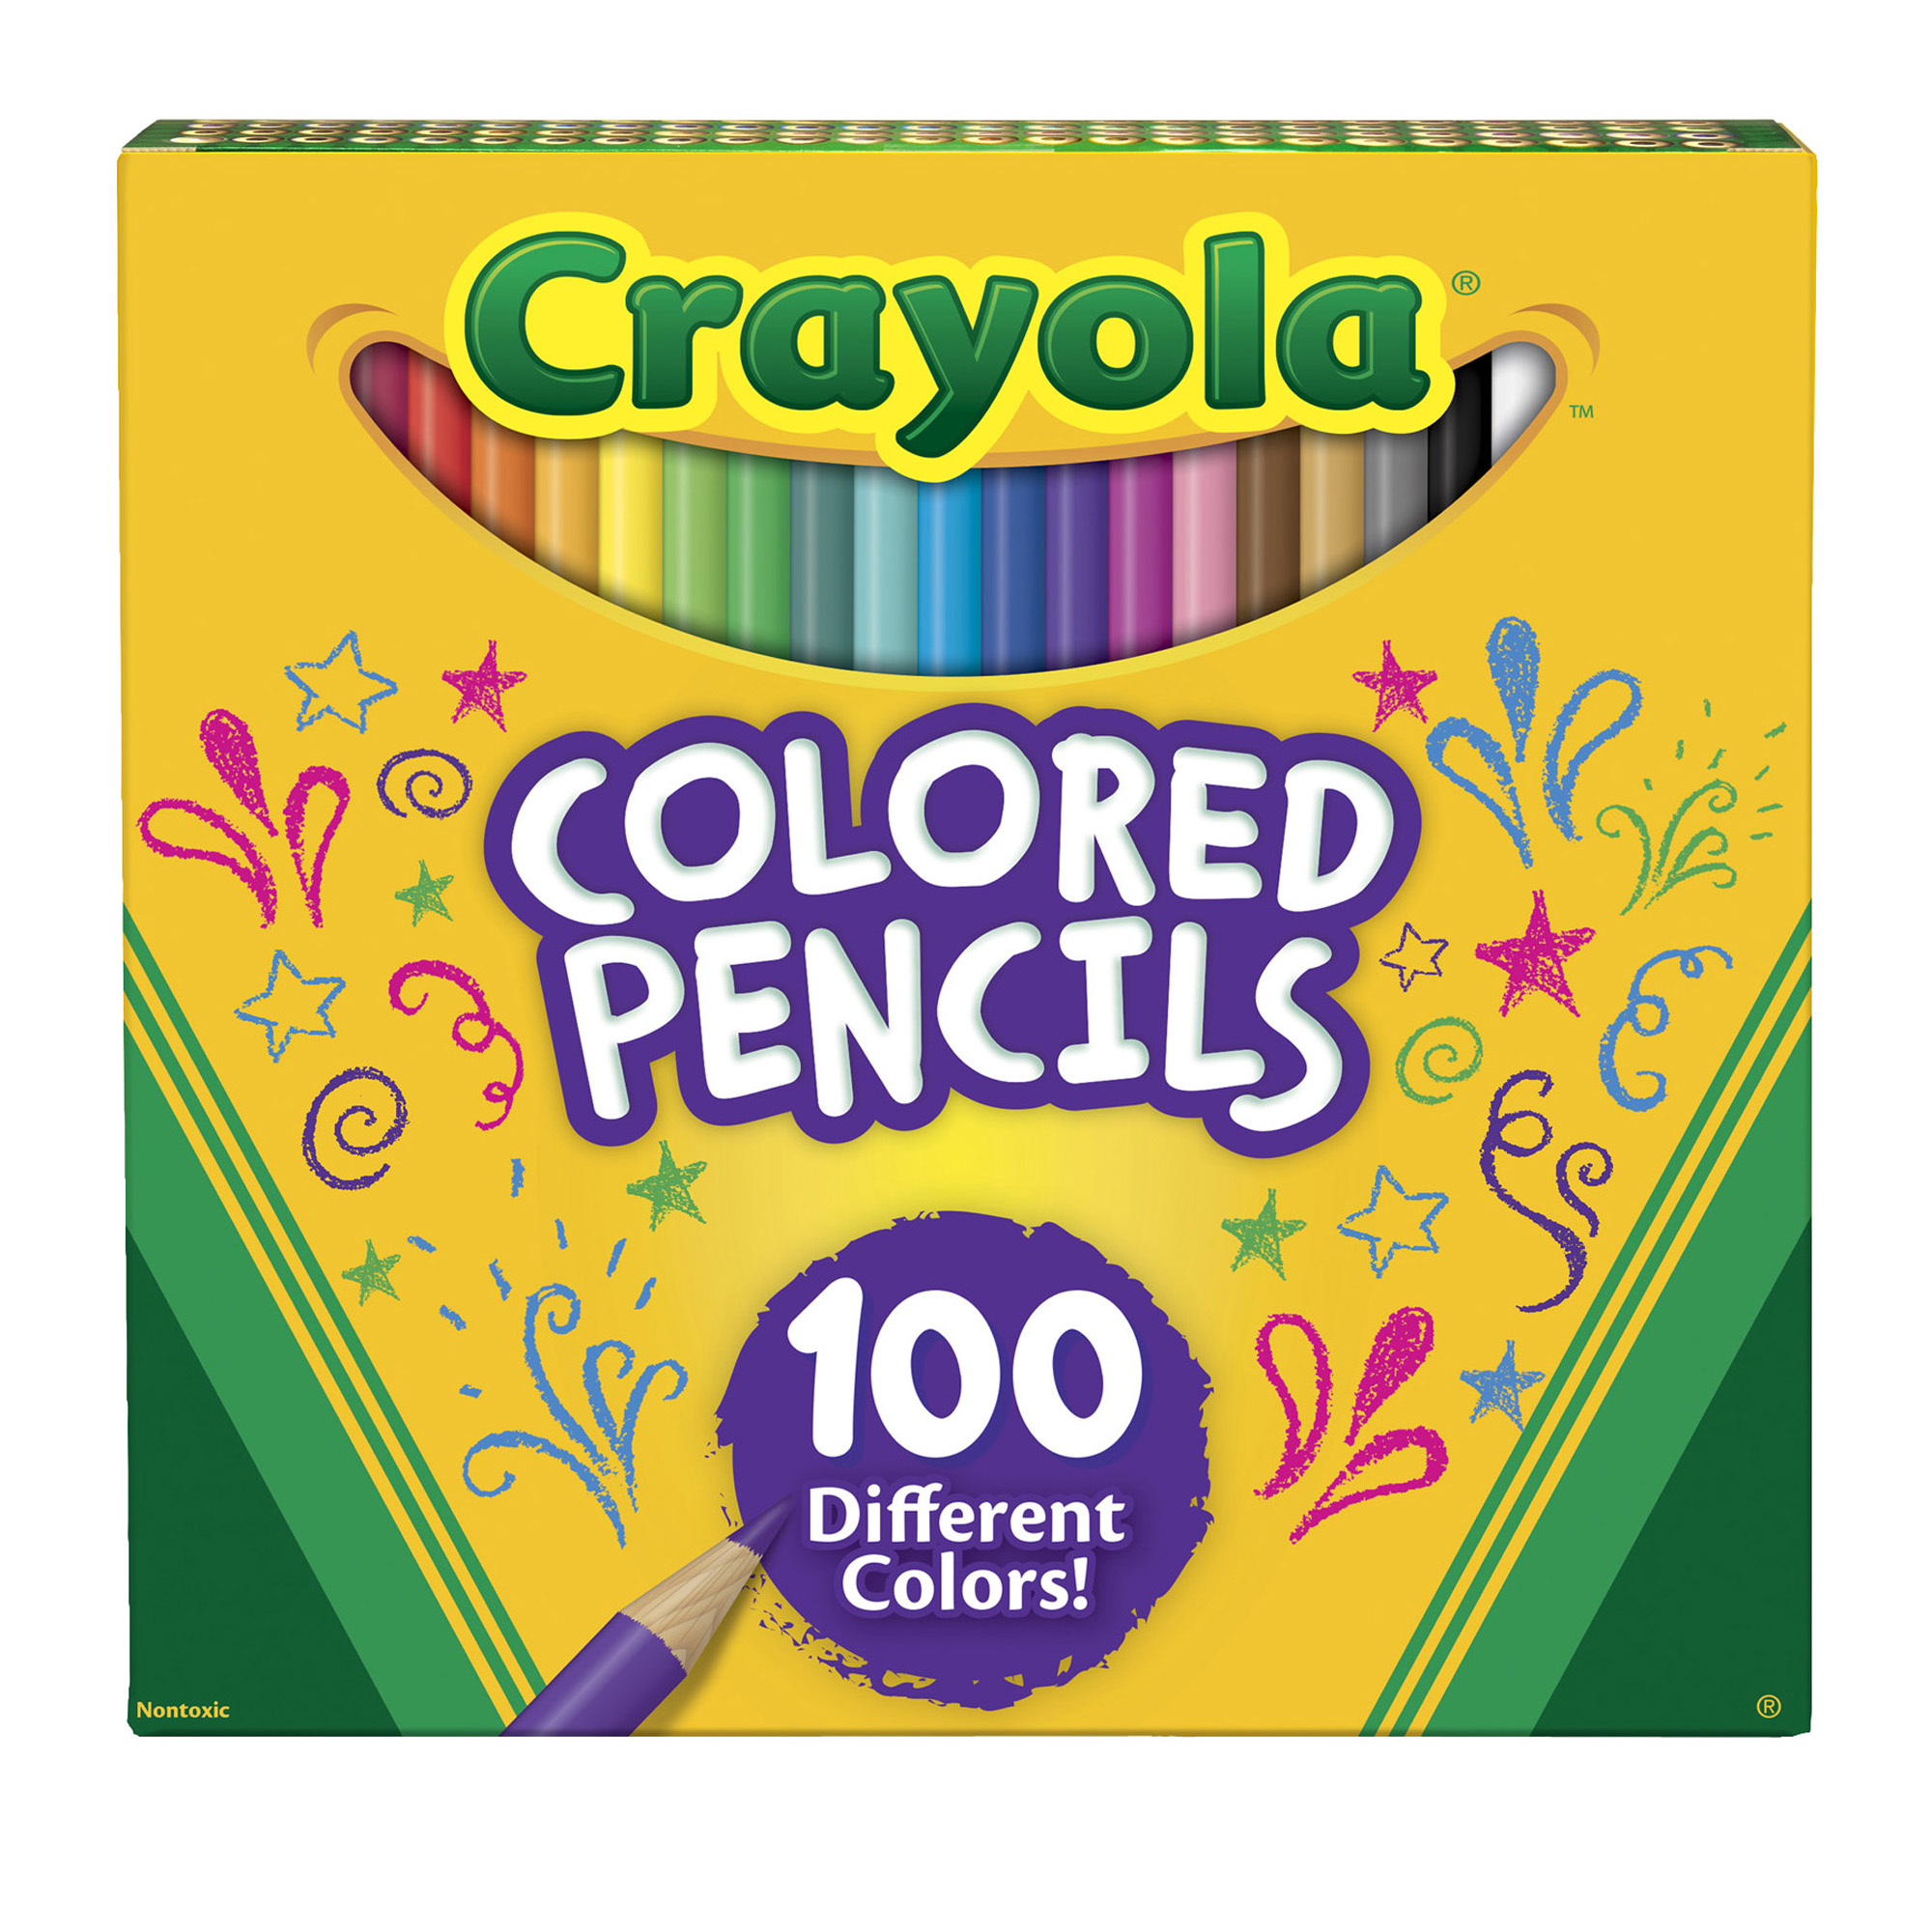 Crayola Colored Pencils, Bulk Colored Pencils, Great for Coloring Books, 100 Count by Crayola LLC